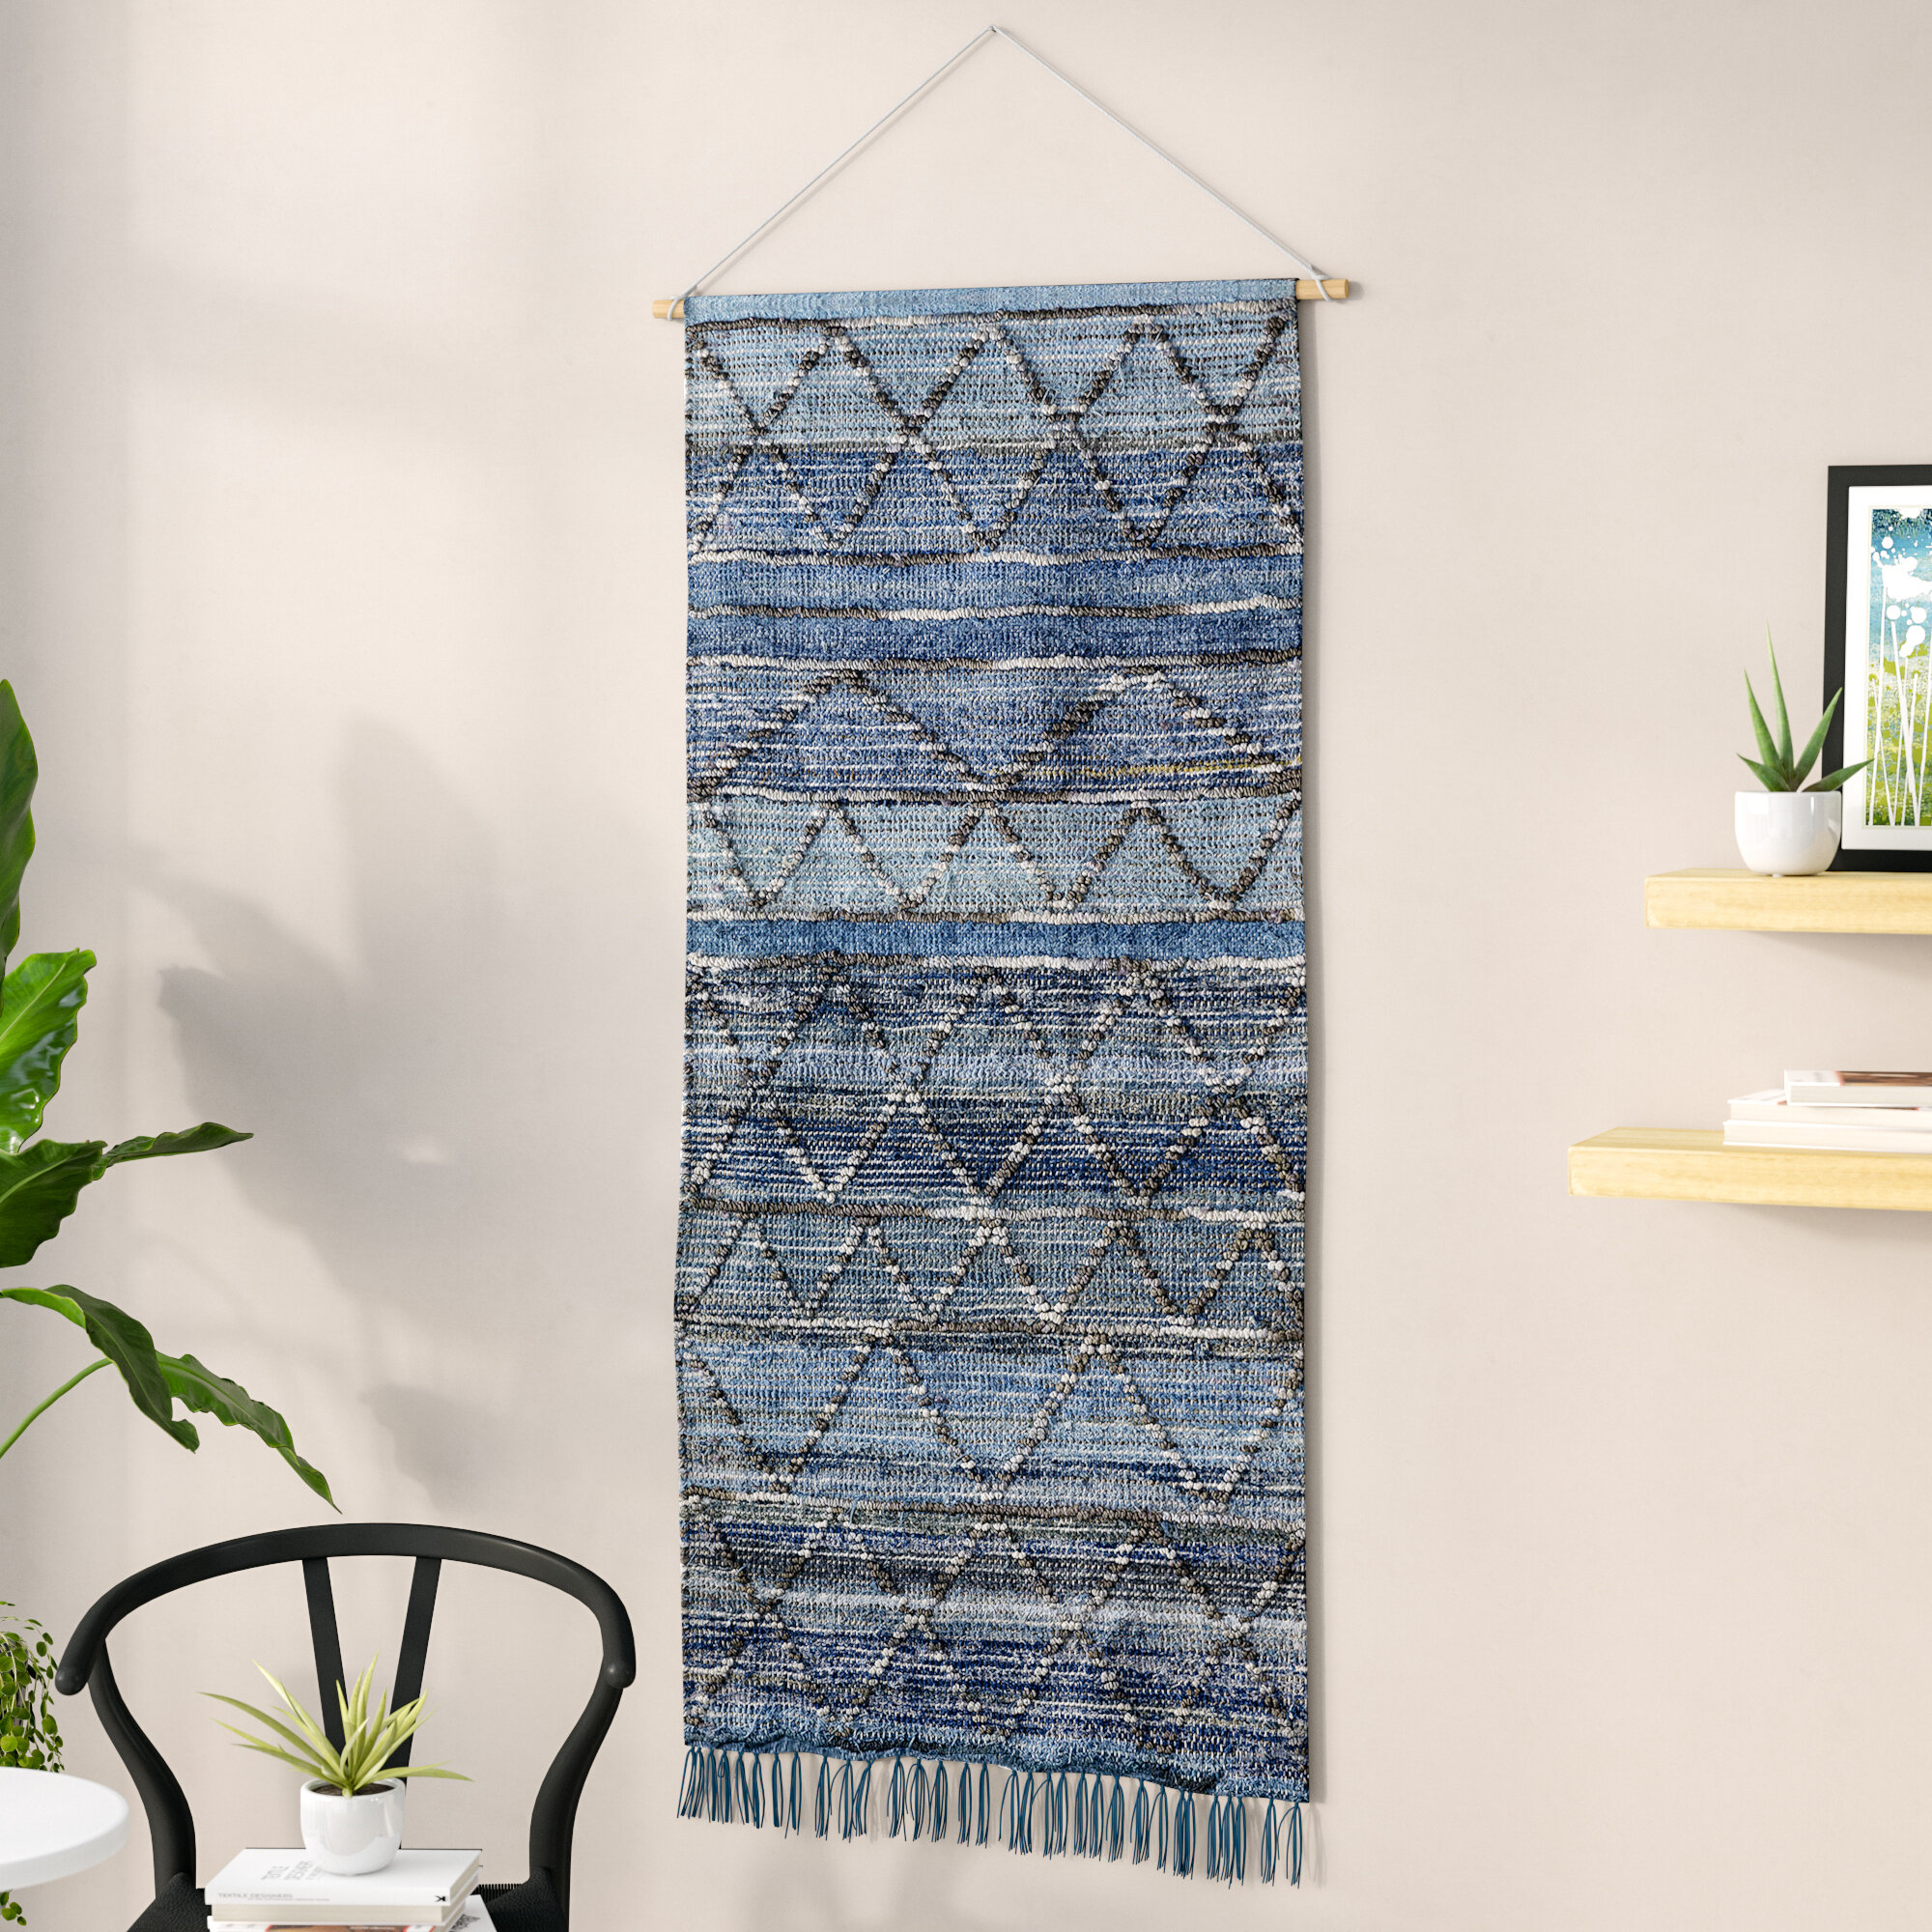 Arabic Art Tapestries You'll Love In 2021 | Wayfair For Most Recently Released Blended Fabric Breeze Of Admiration Woven Tapestries (View 11 of 20)